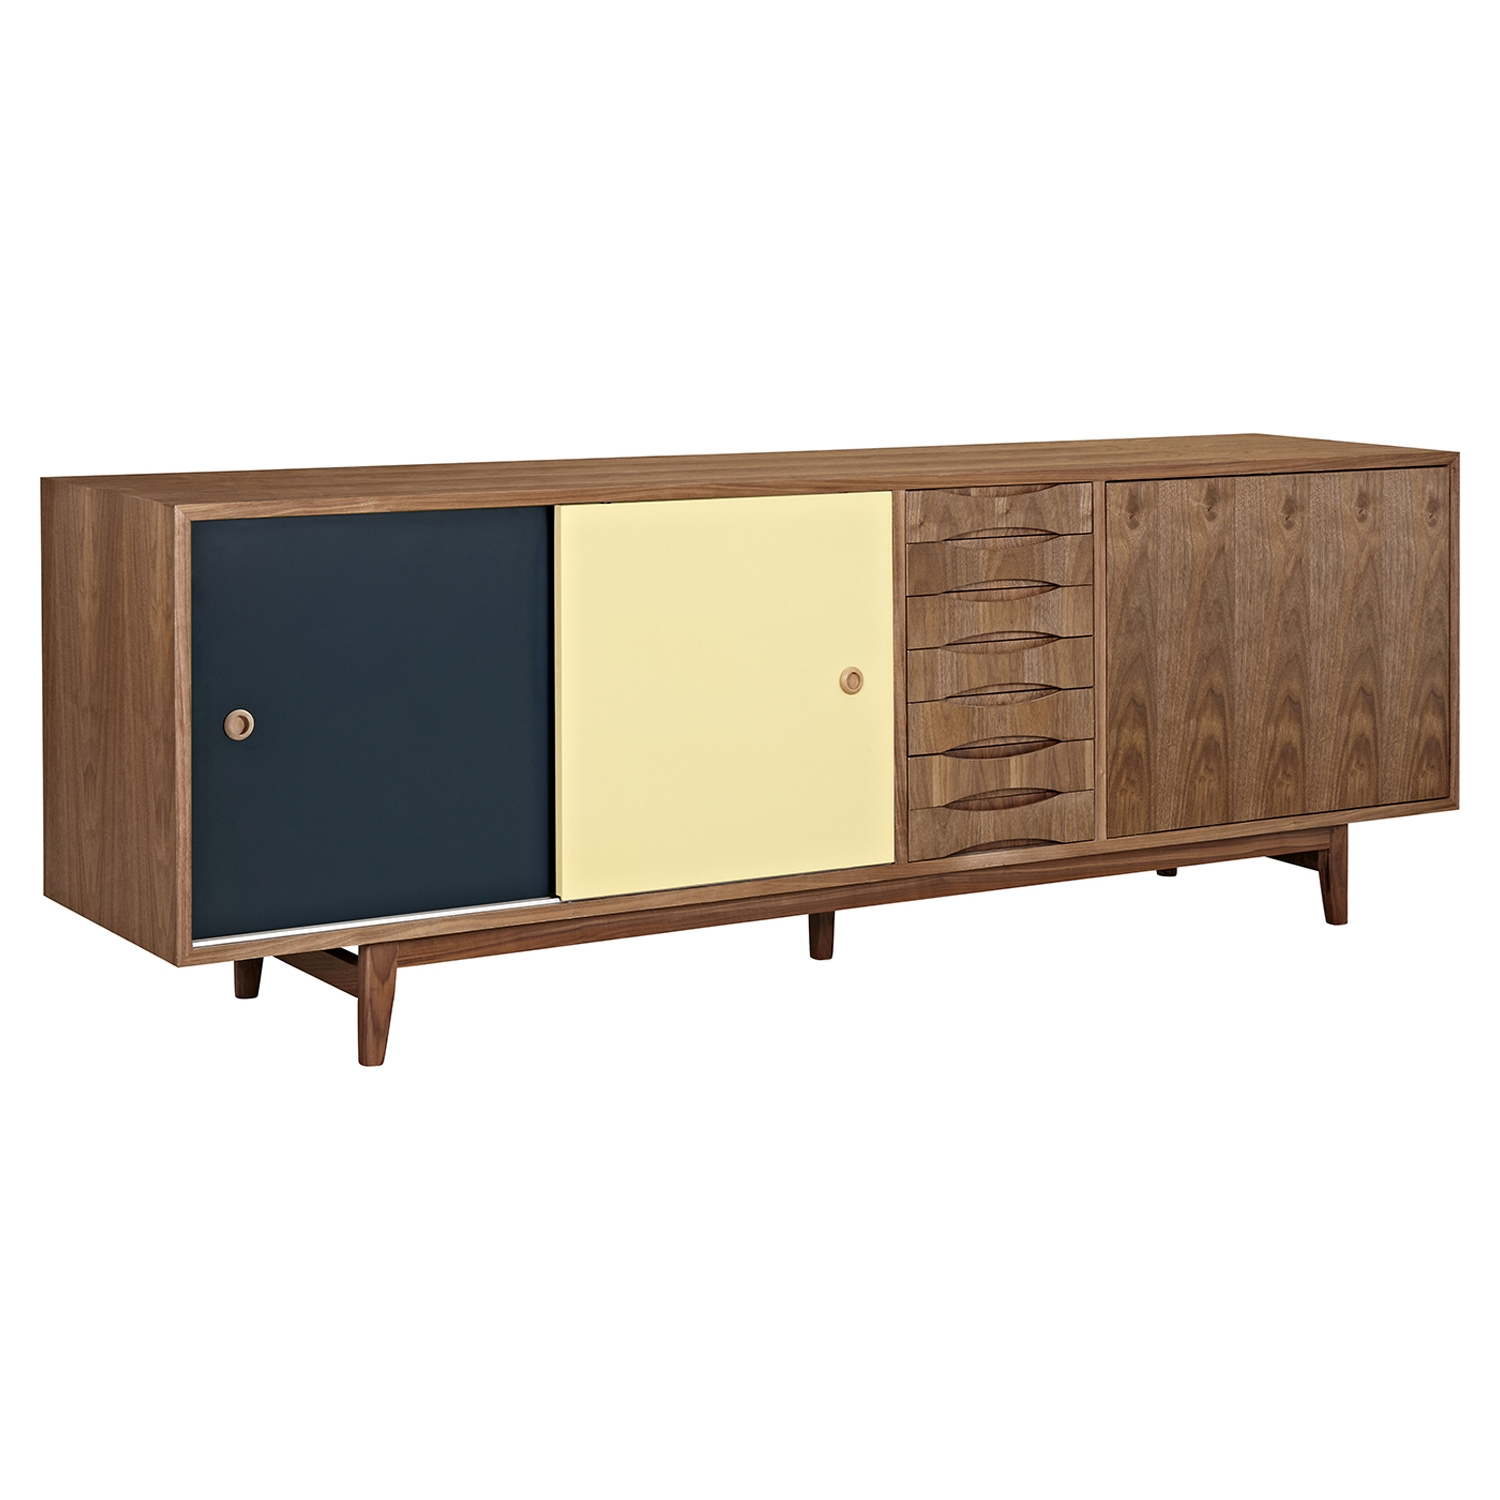 Alma 2 Sliding Doors Sideboard - Walnut with Teal Door